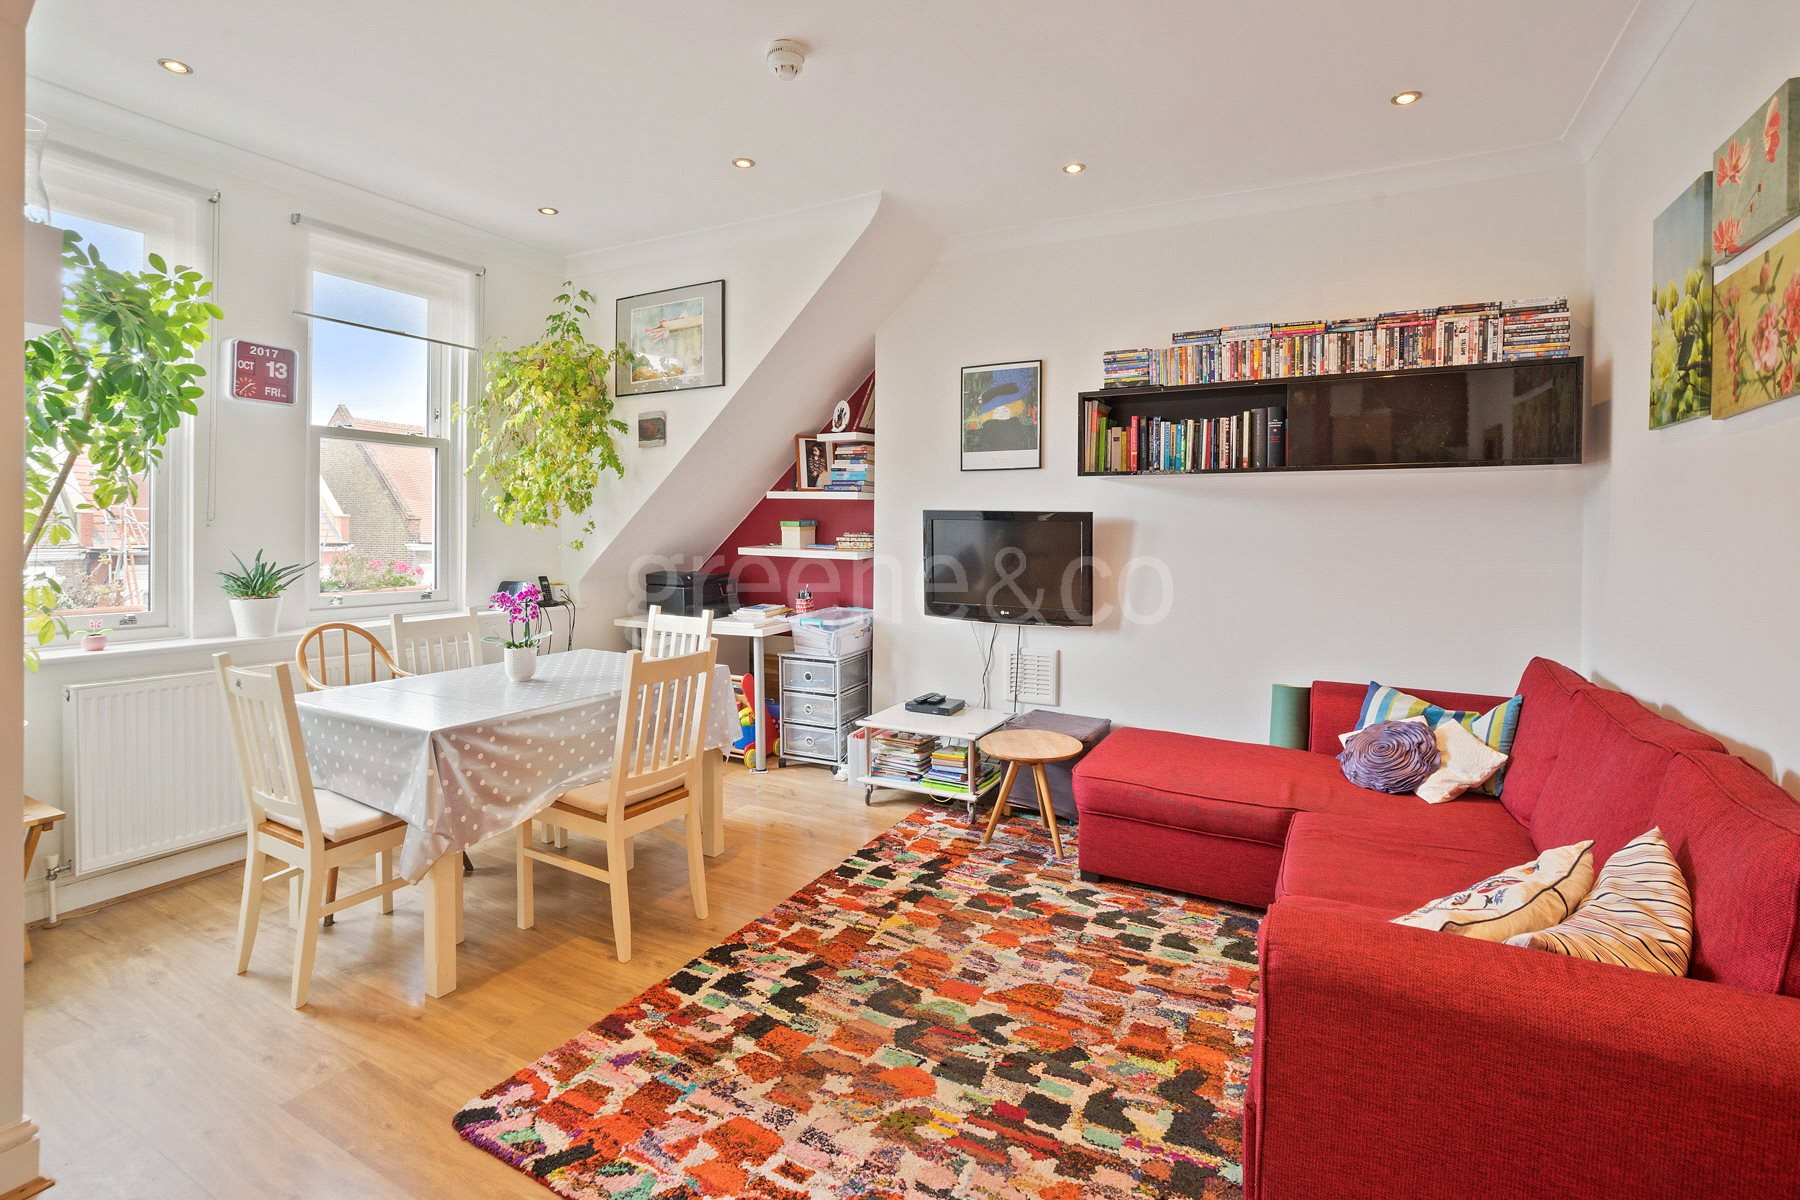 2 Bedrooms Maisonette Flat for sale in Buckley Road, Kilburn, London, NW6